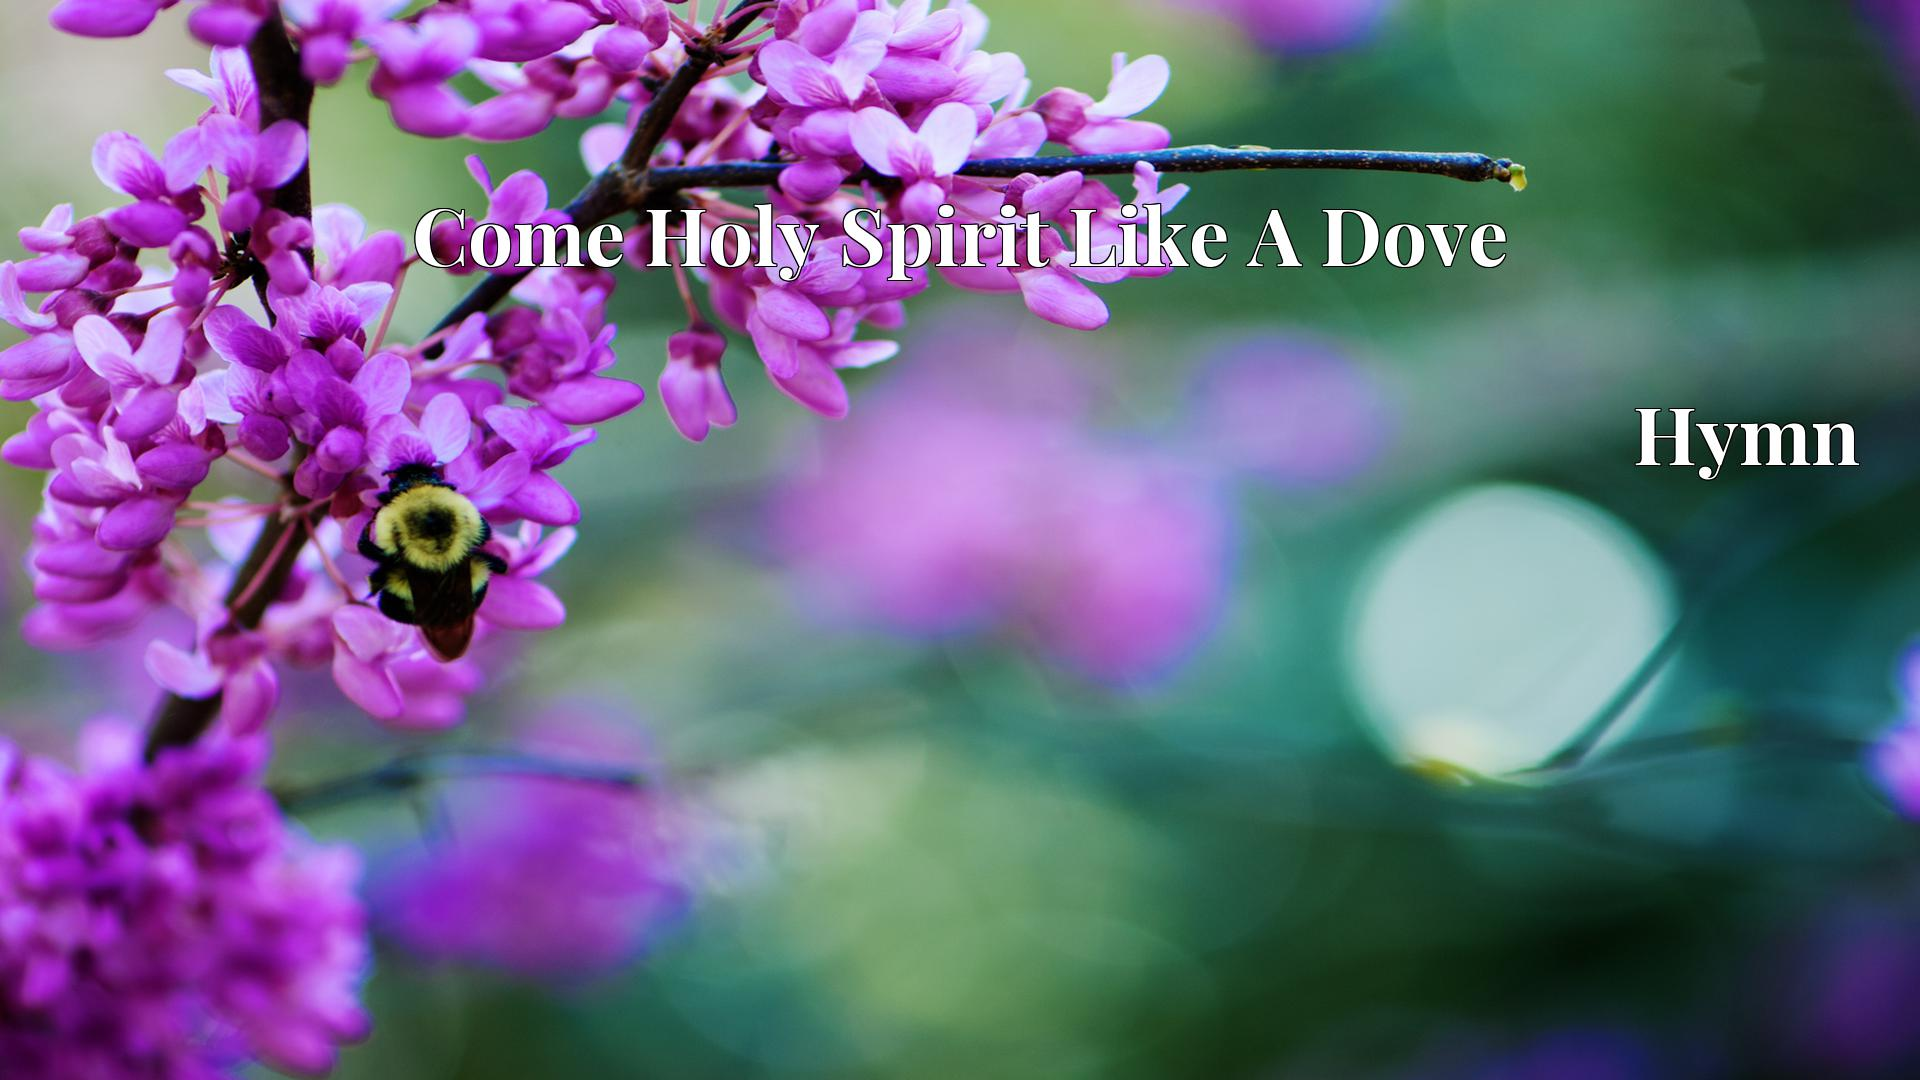 Come Holy Spirit Like A Dove - Hymn